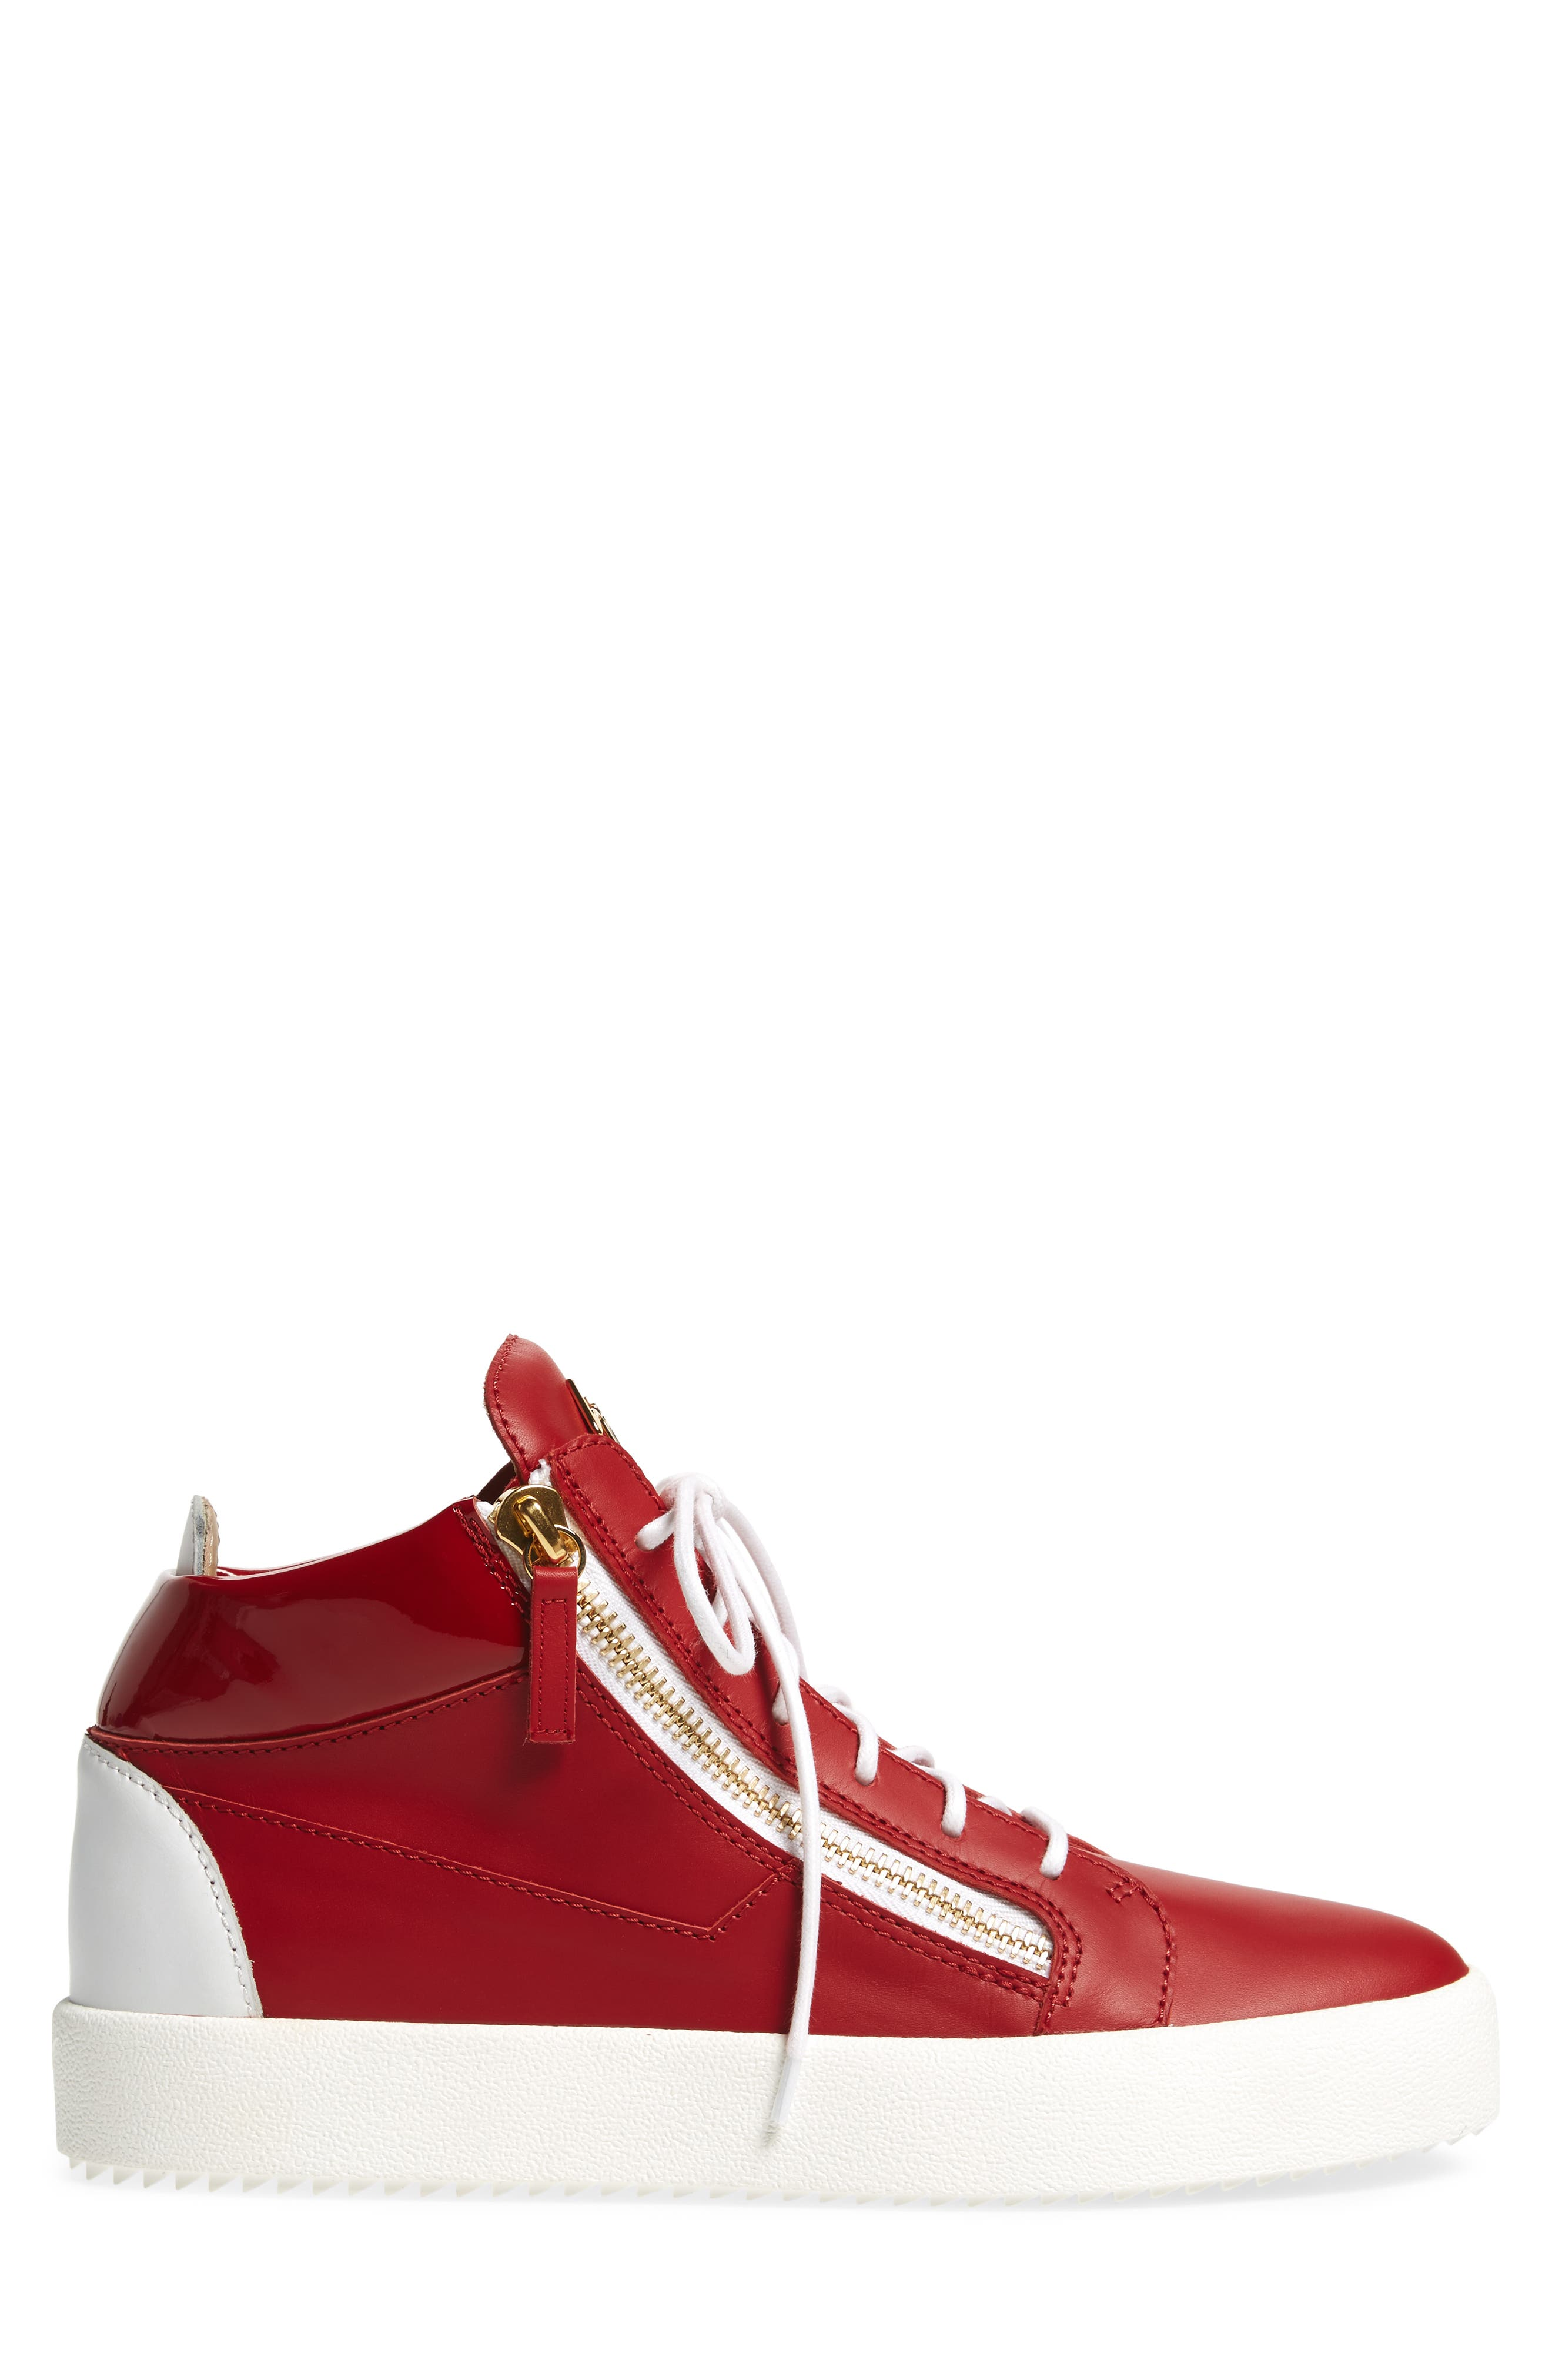 Double Zipper Mid Top Sneaker,                             Alternate thumbnail 3, color,                             Red W/ White Leather